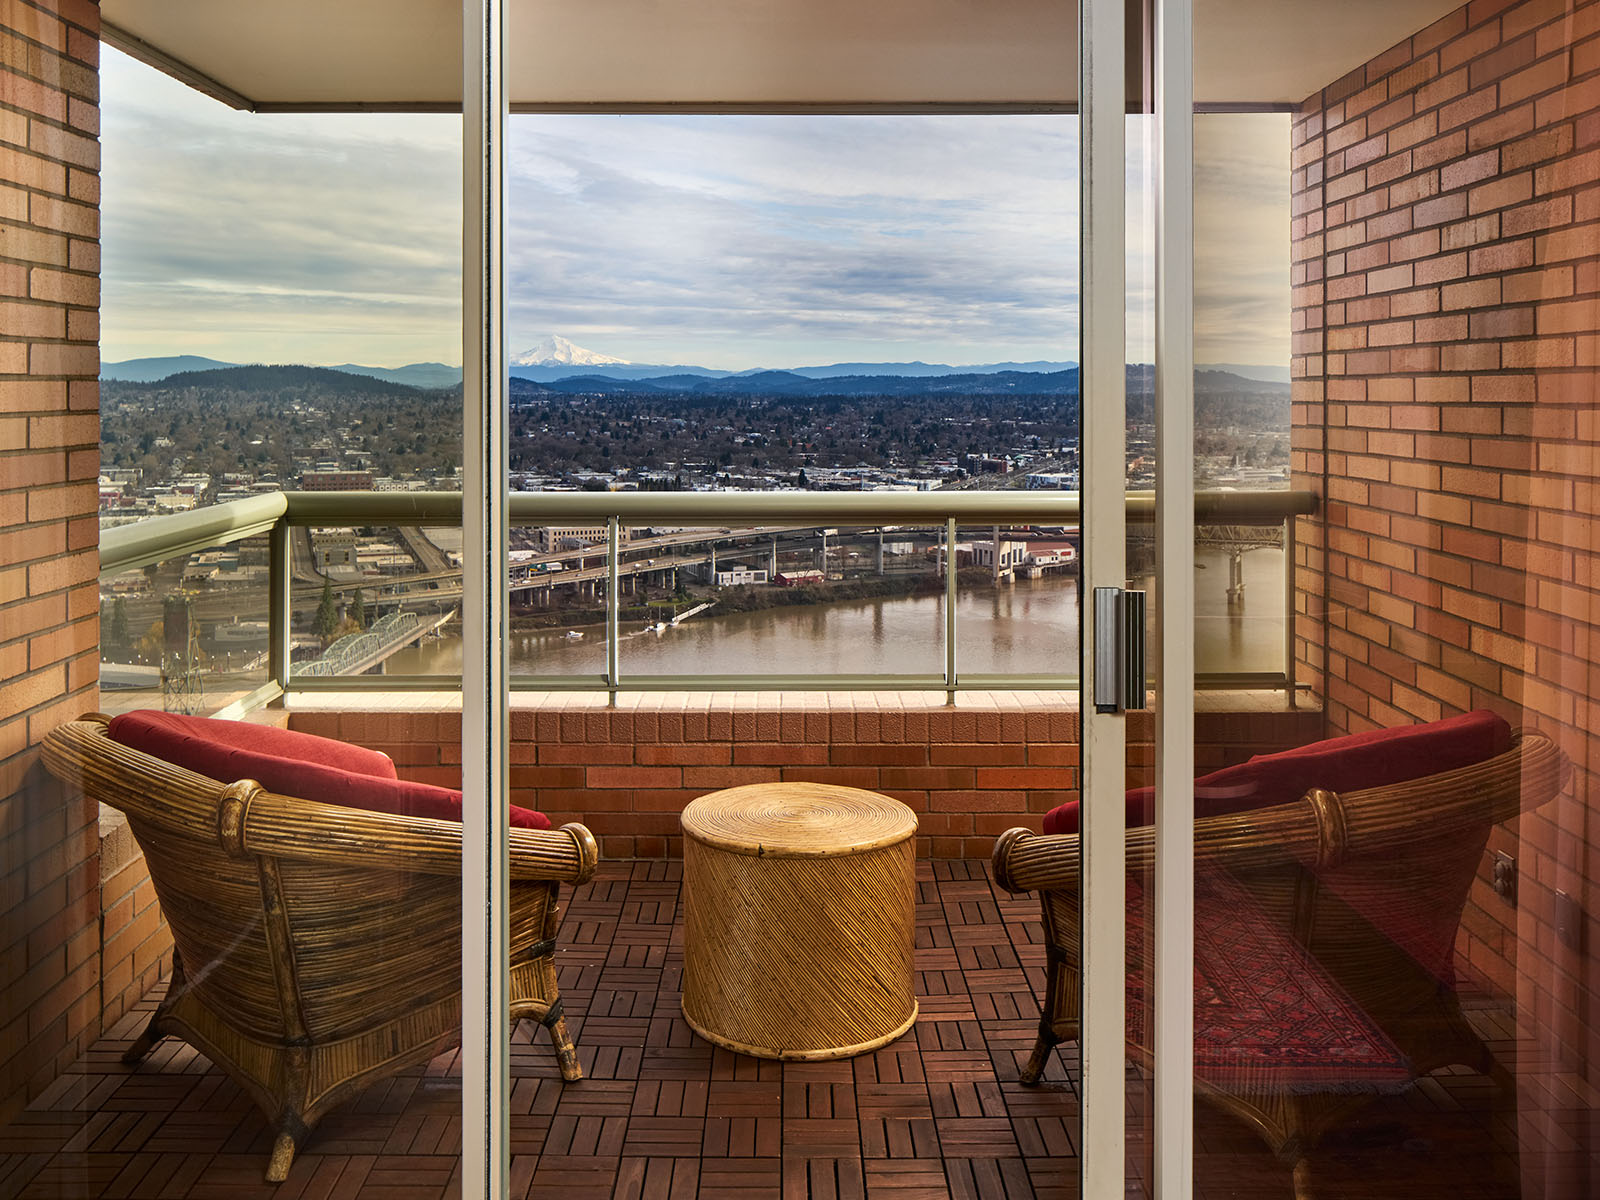 Balcony, views of Willamette river and Mount Hood